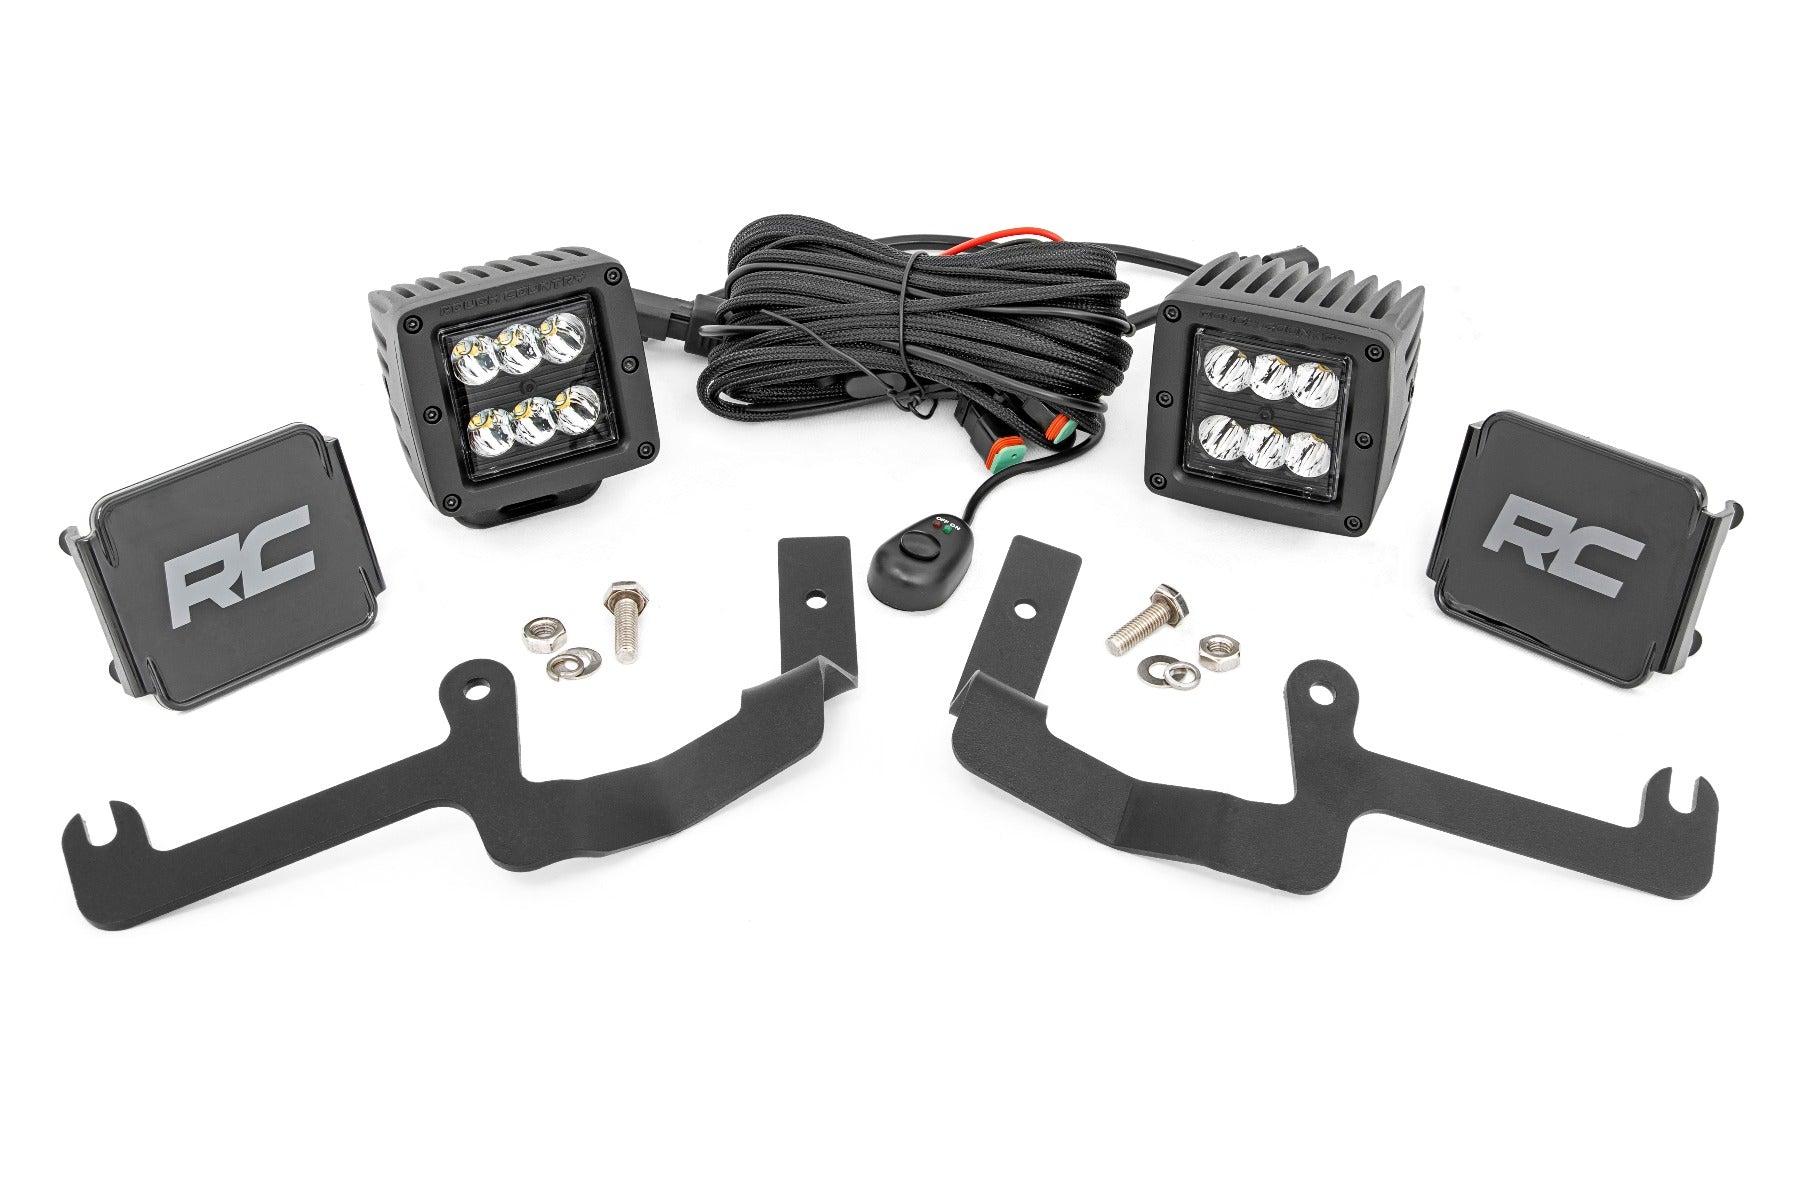 Chevy 2-inch LED Lower Windshield Ditch Kit Black Series Spot Beam (19-20 Silverado)